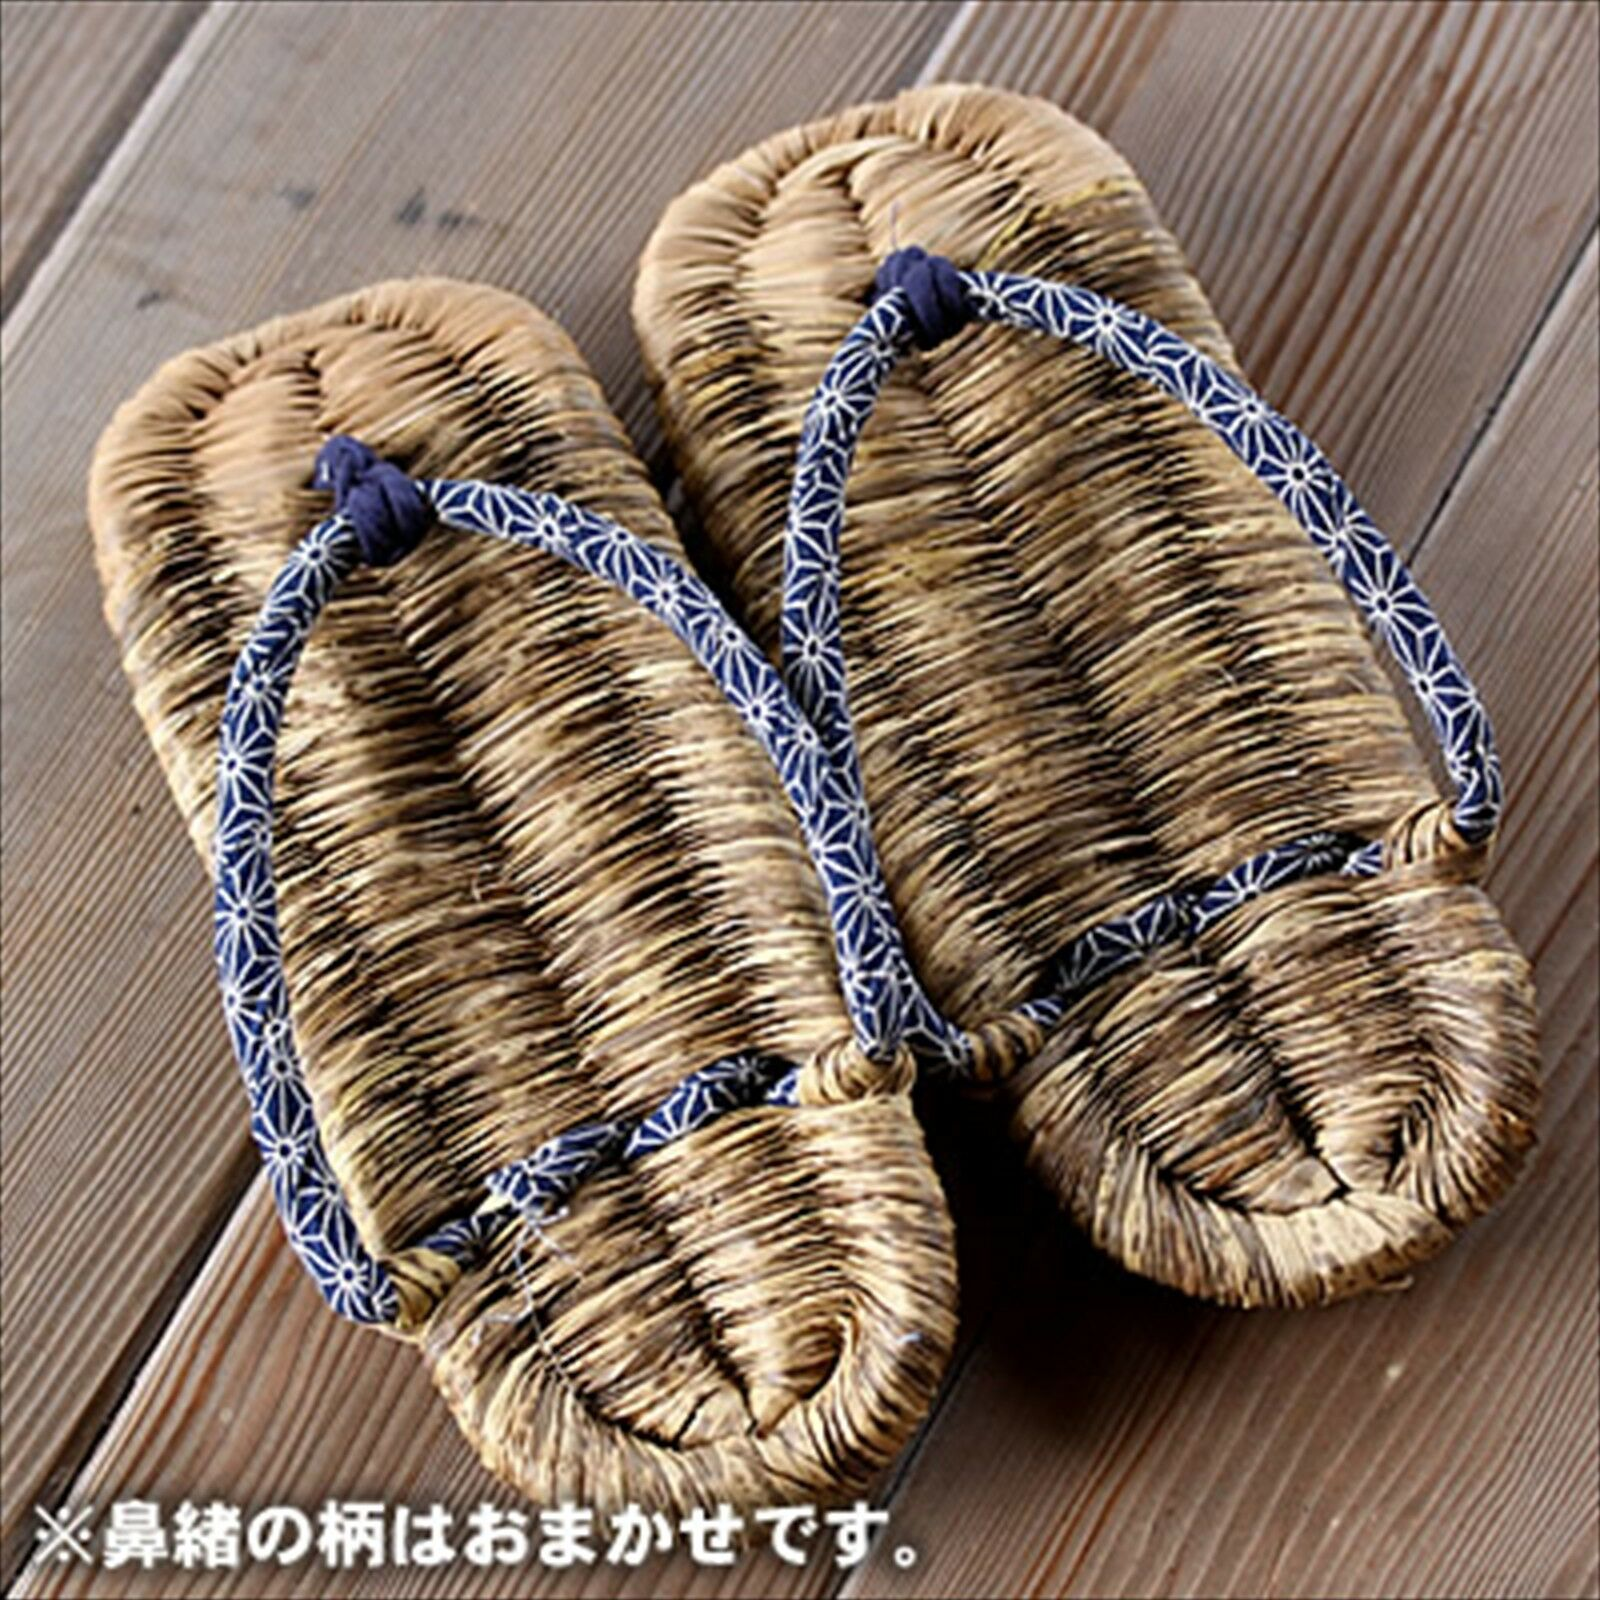 Japanese Traditional Bamboo Leather Sandals Zori Waraji Hand Made 28cm Mens